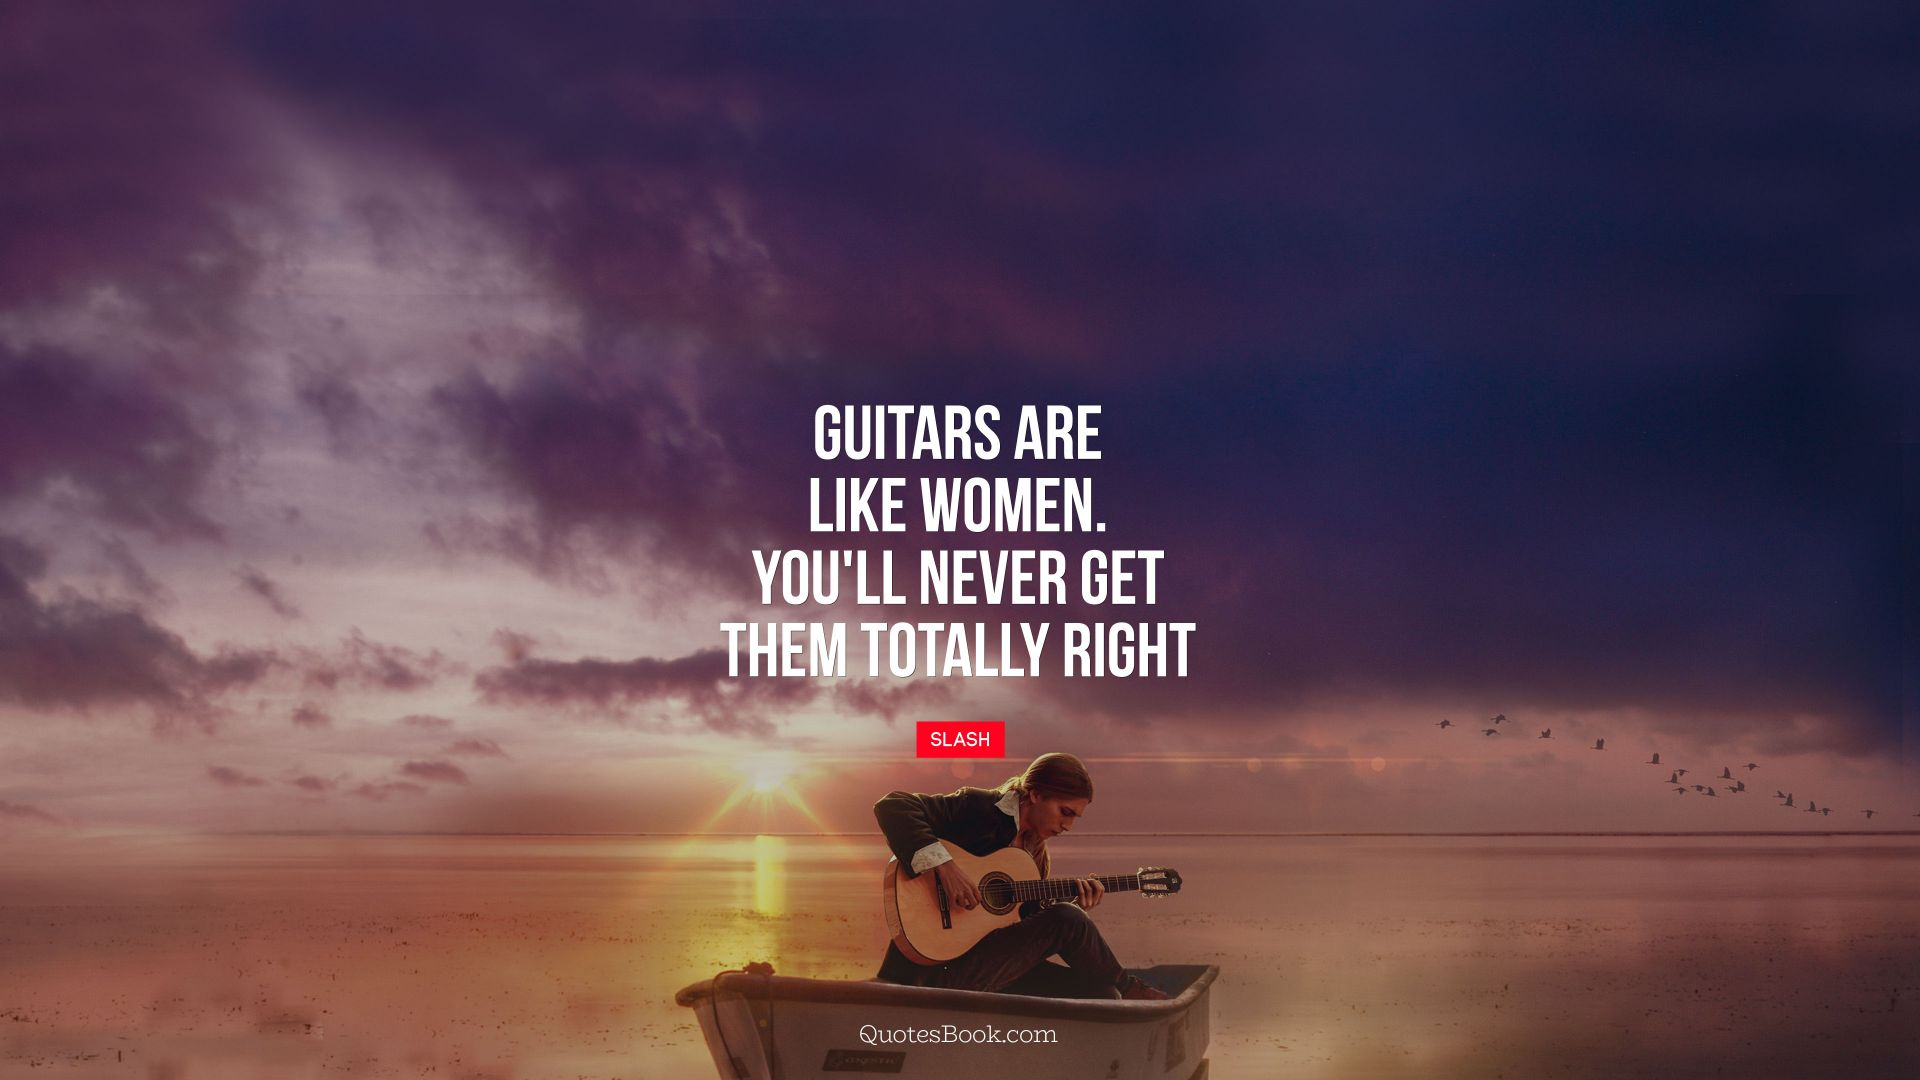 Guitars are like women. You'll never get them totally right. - Quote by Slash